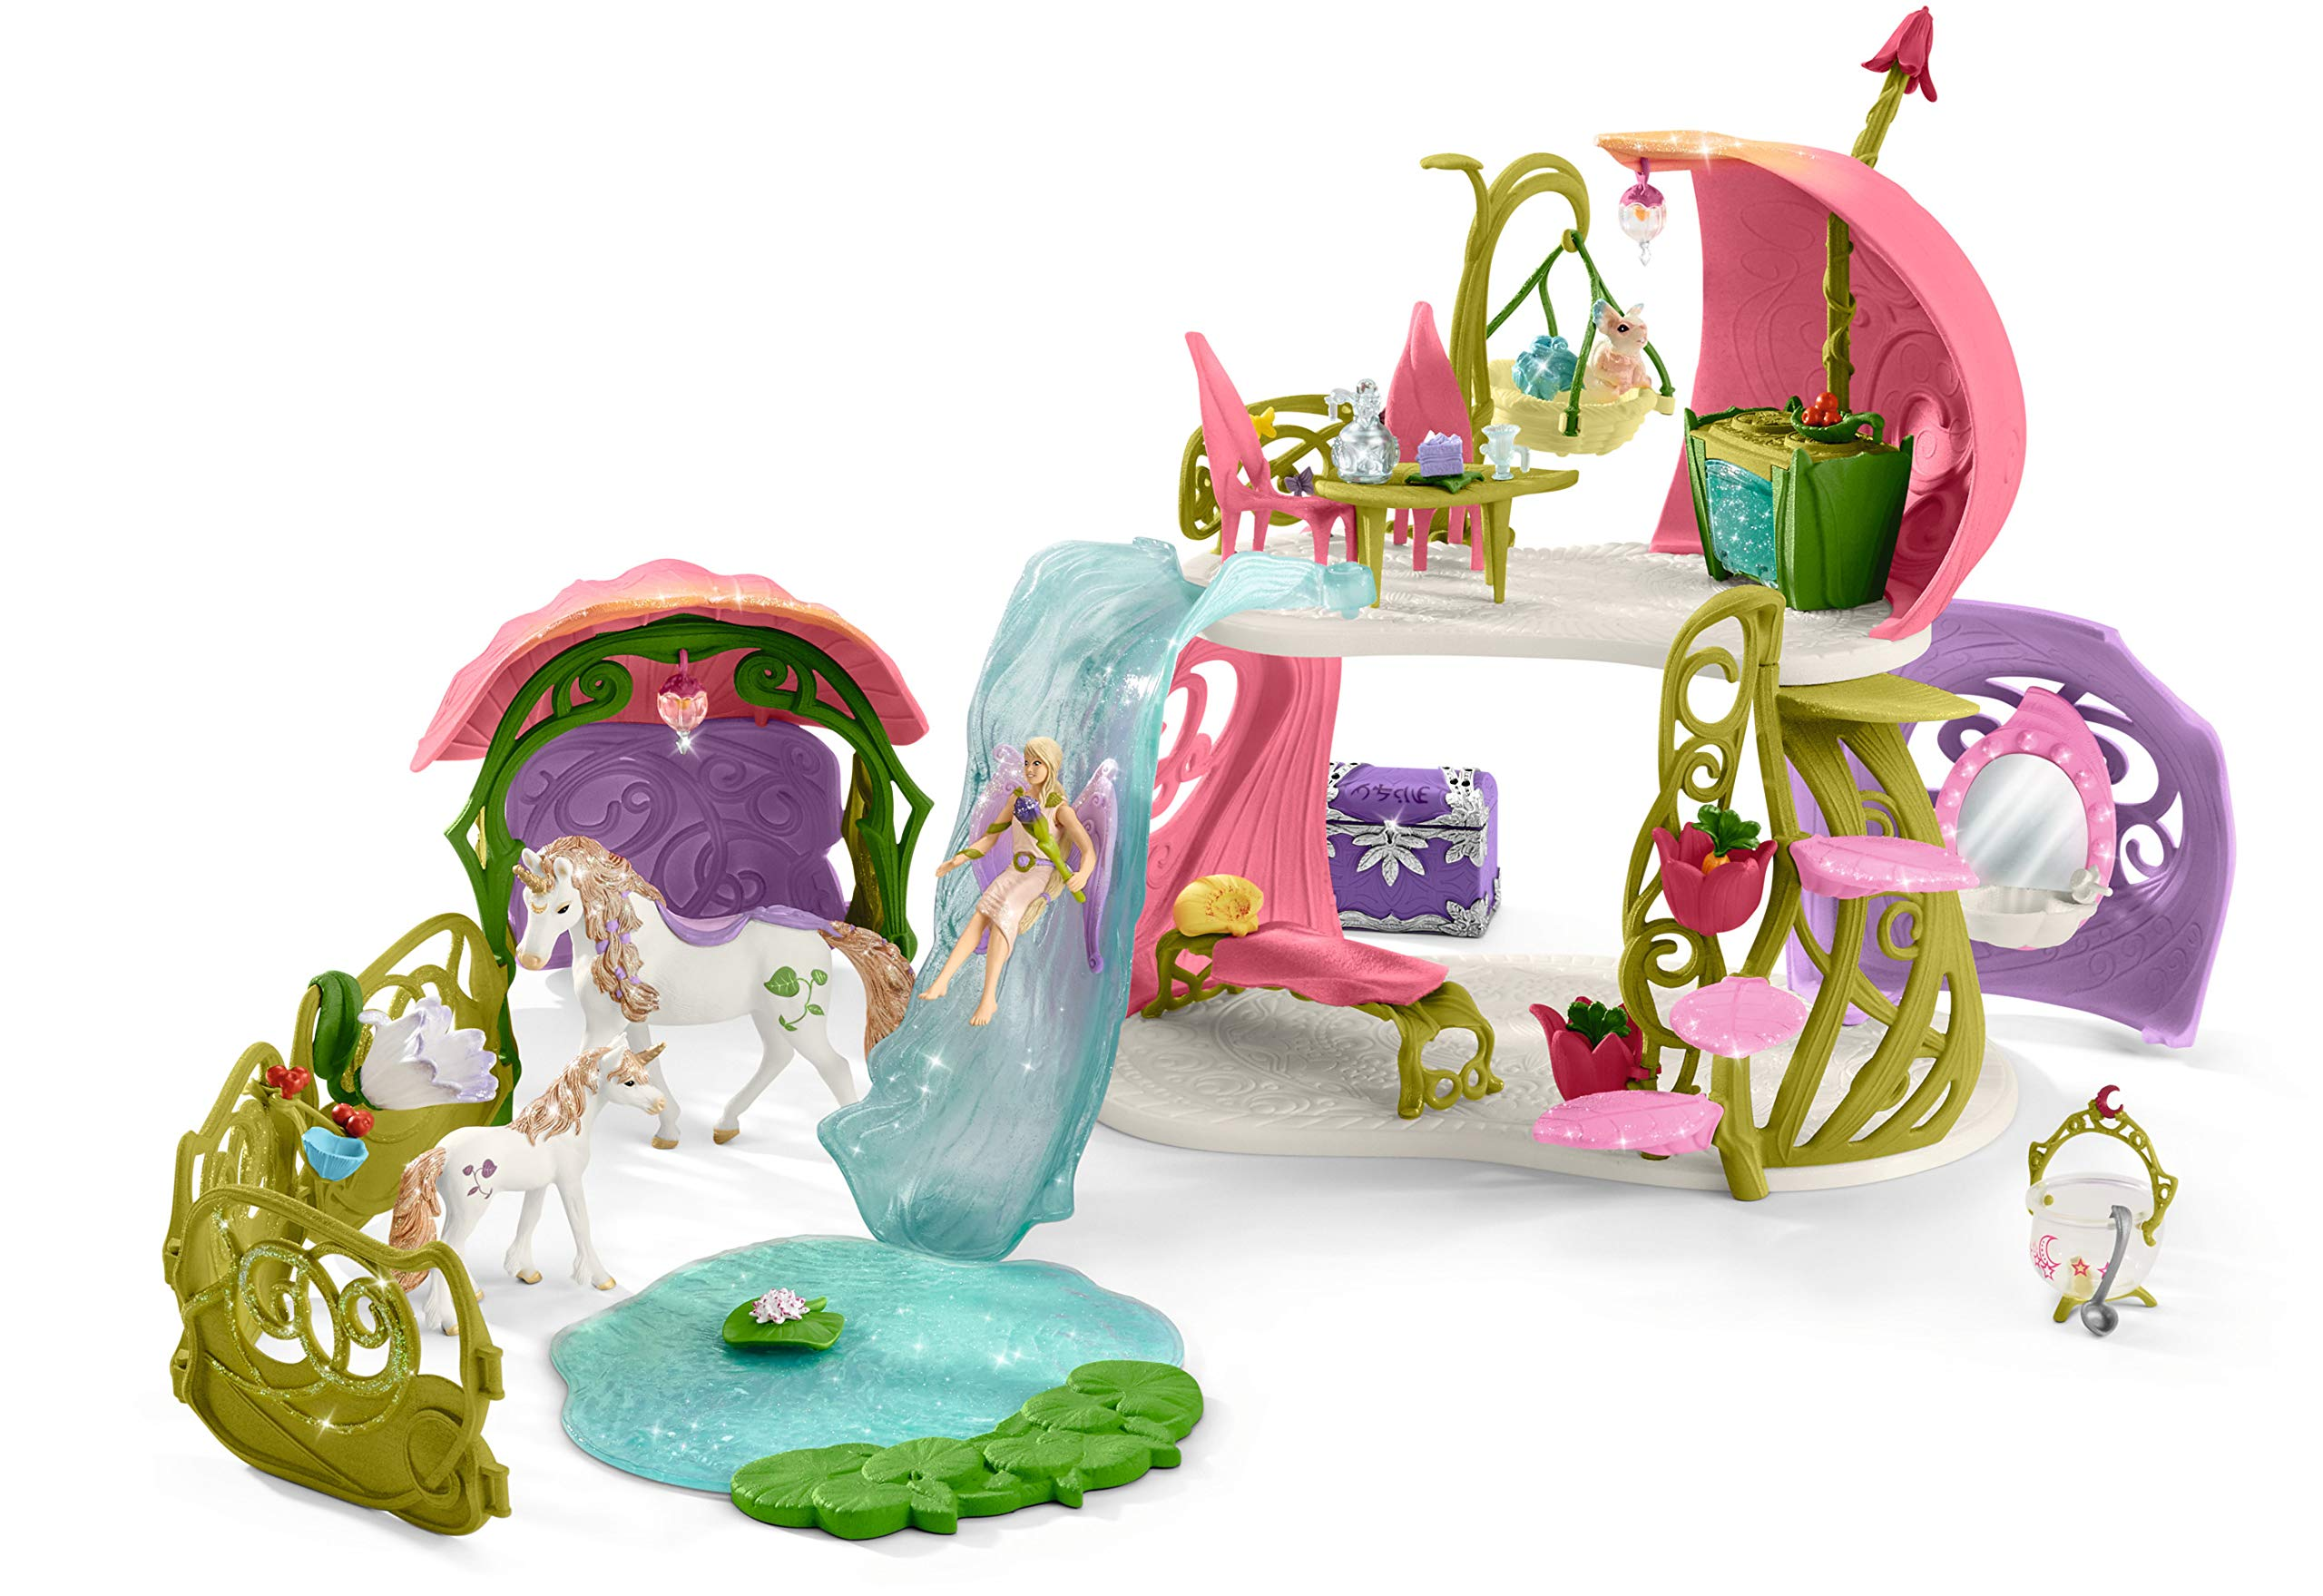 Schleich Glittering Flower House with Unicorns, Lake and Stable, Multicolor